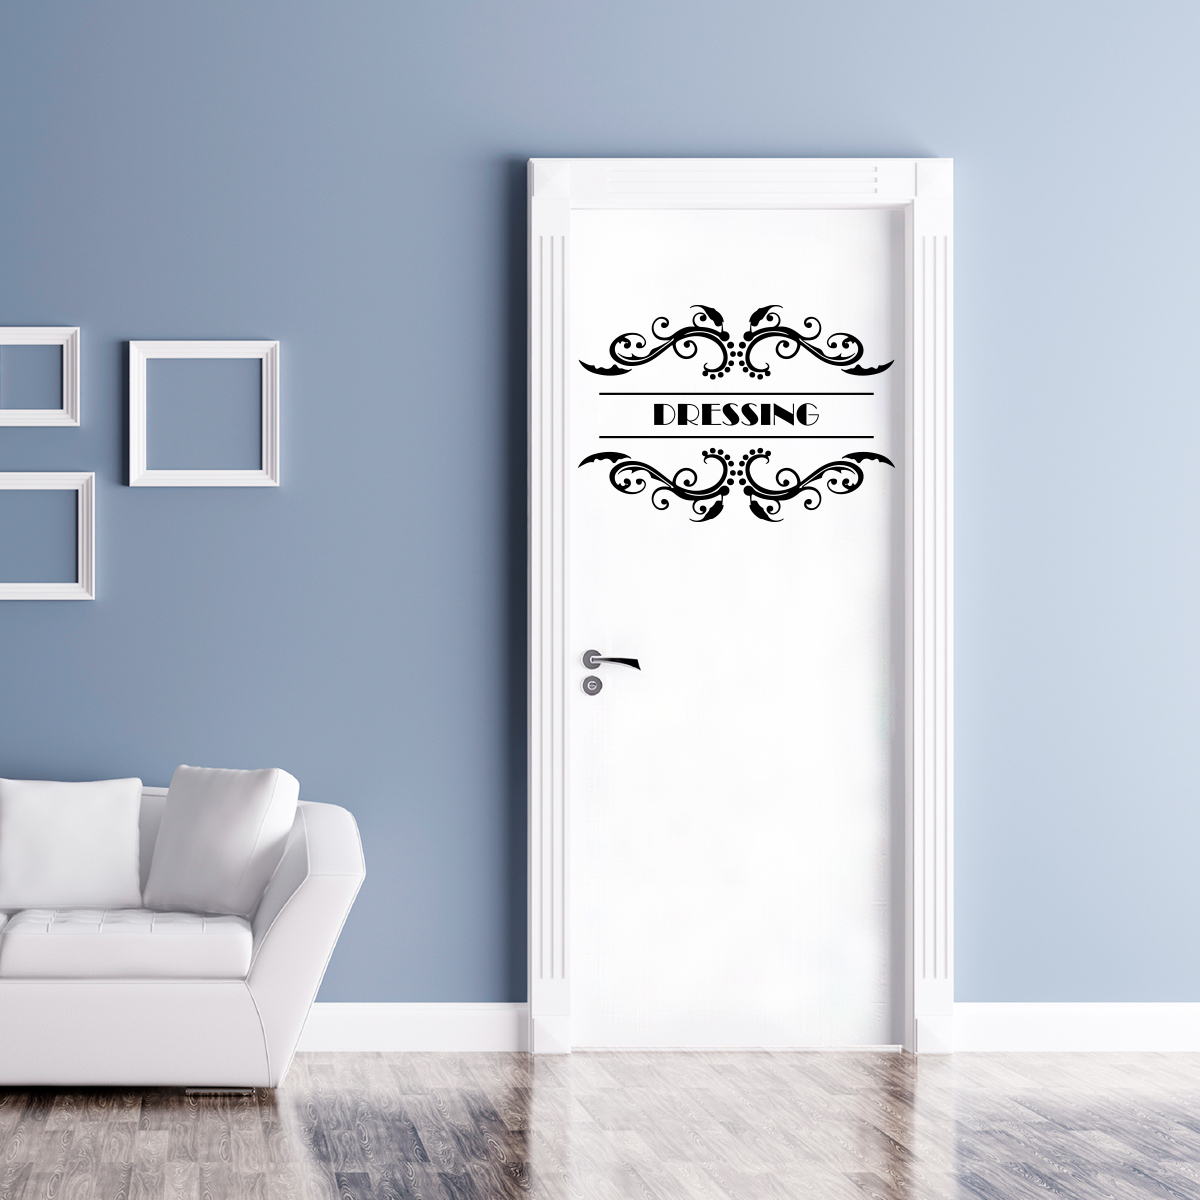 sticker porte dressing orn stickers citations chambre. Black Bedroom Furniture Sets. Home Design Ideas